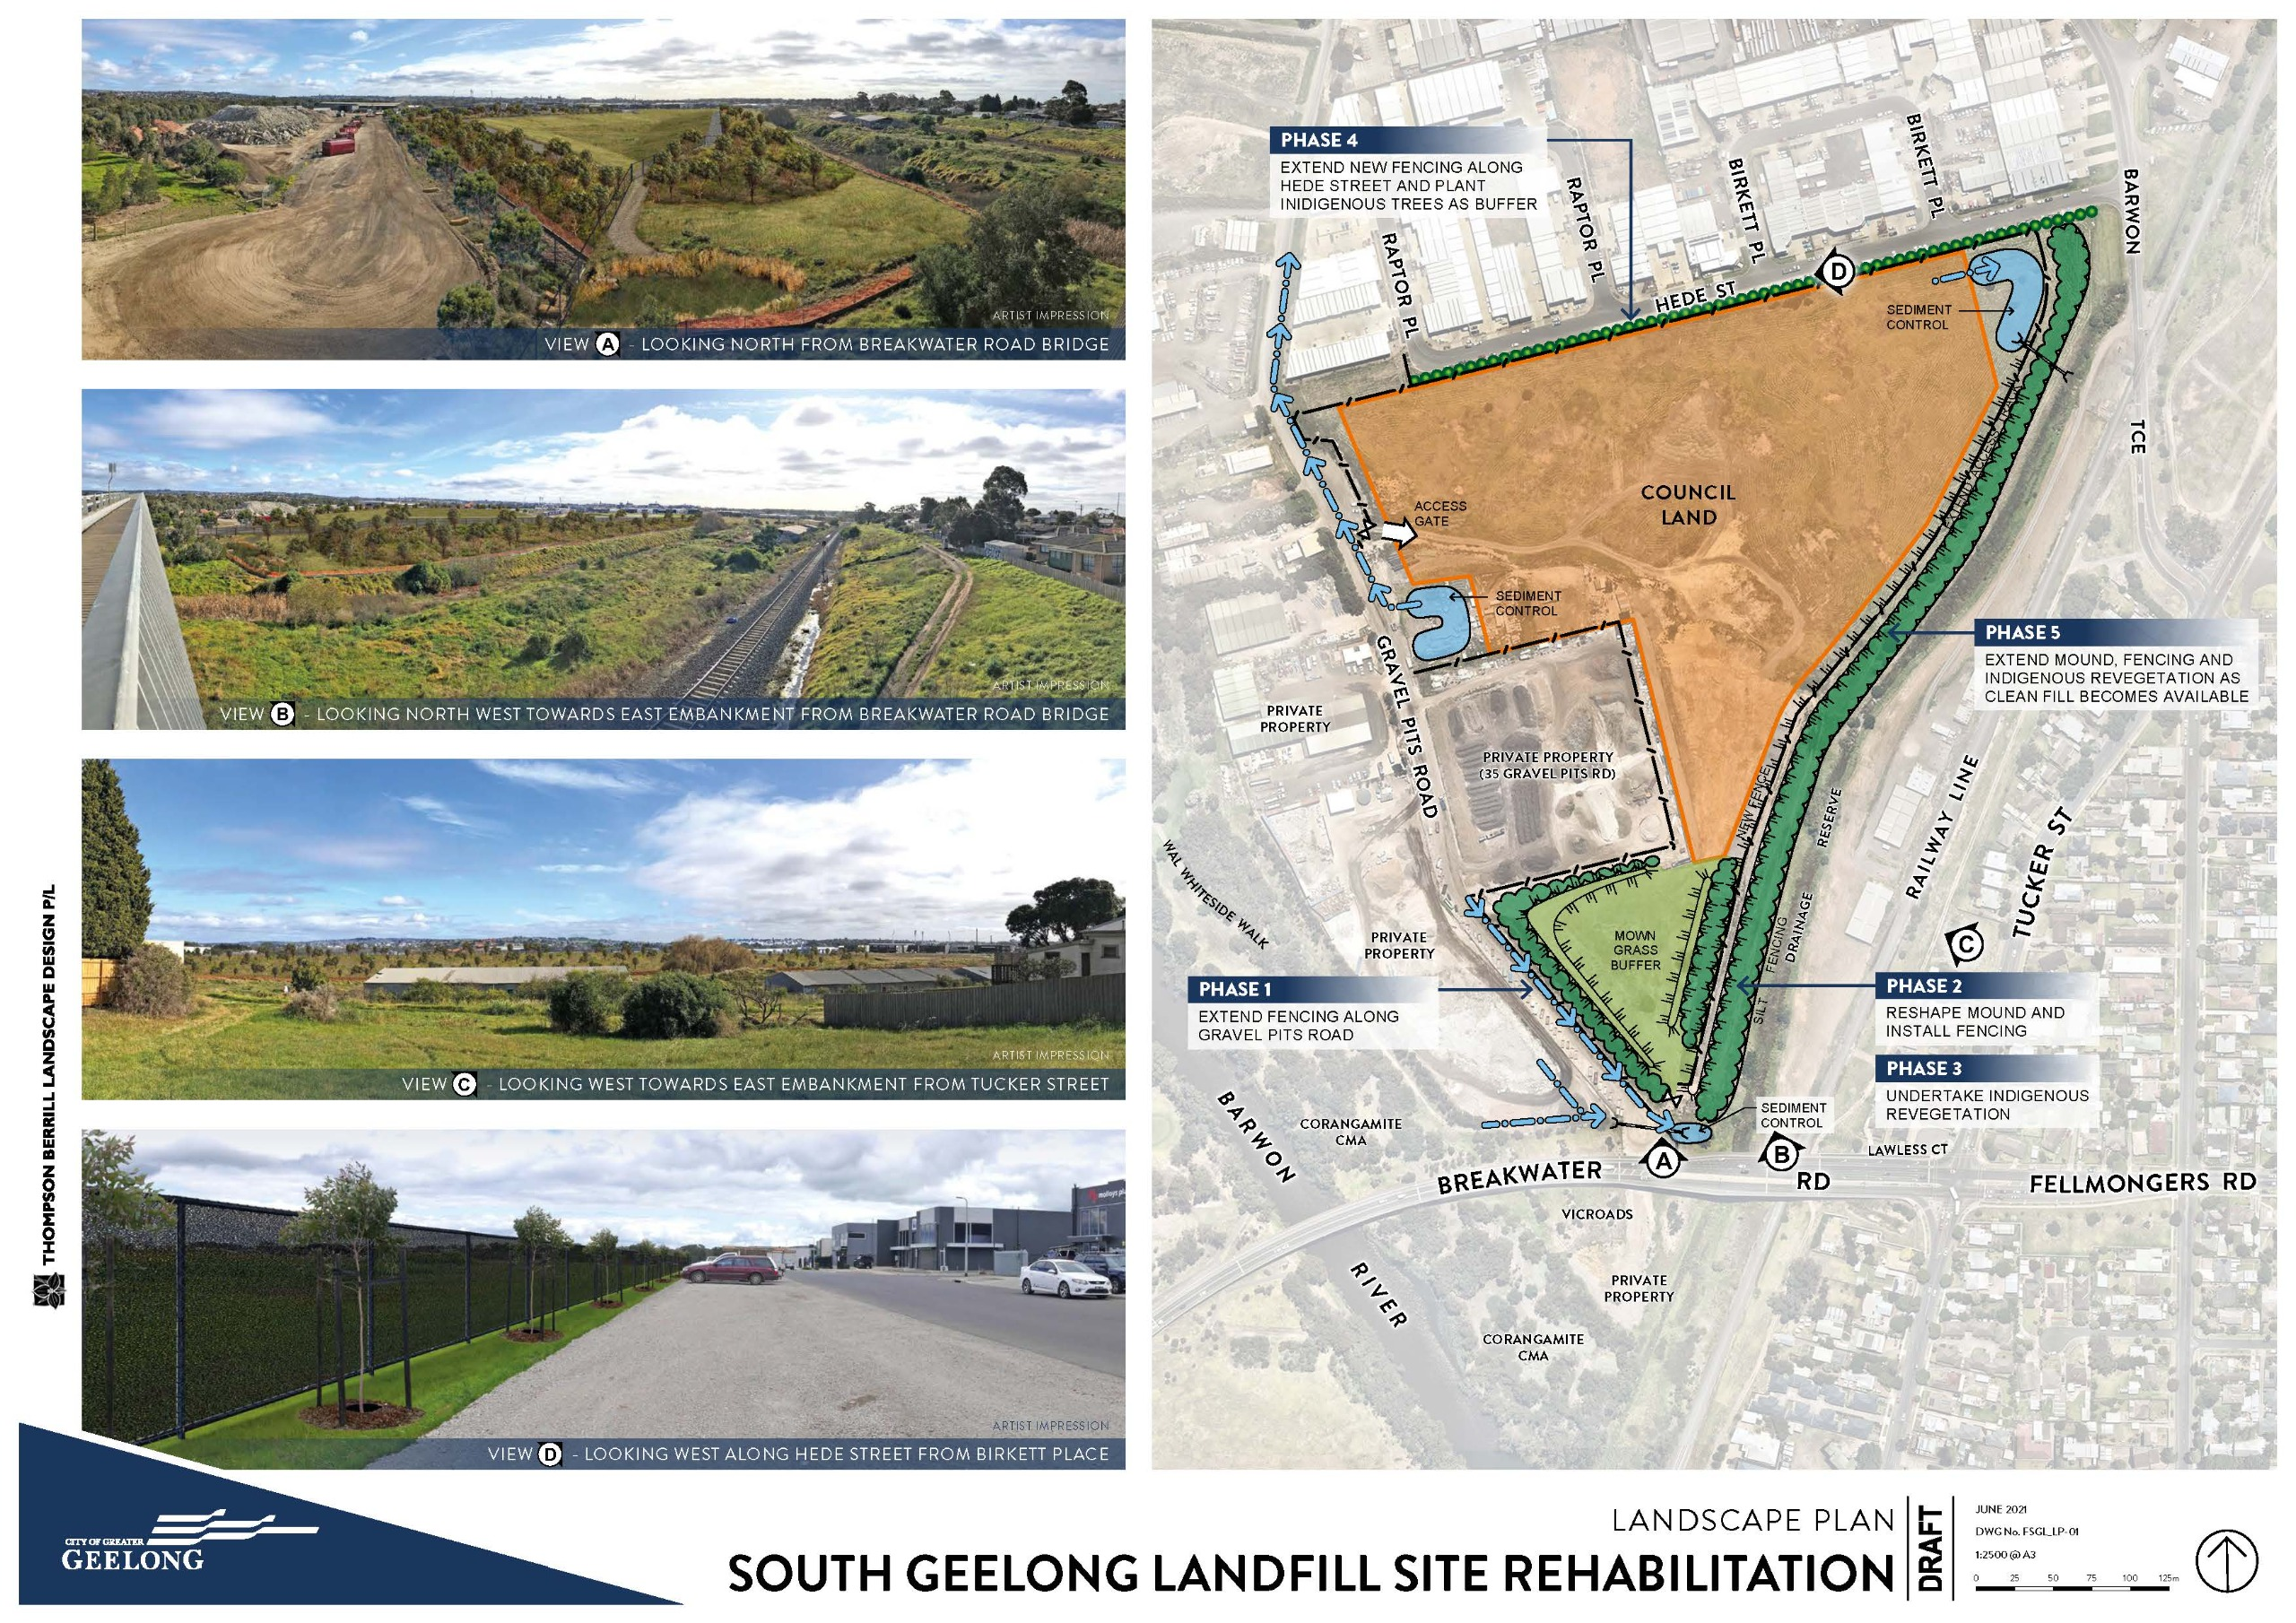 Former South Geelong Landfill Site Landscape Plan